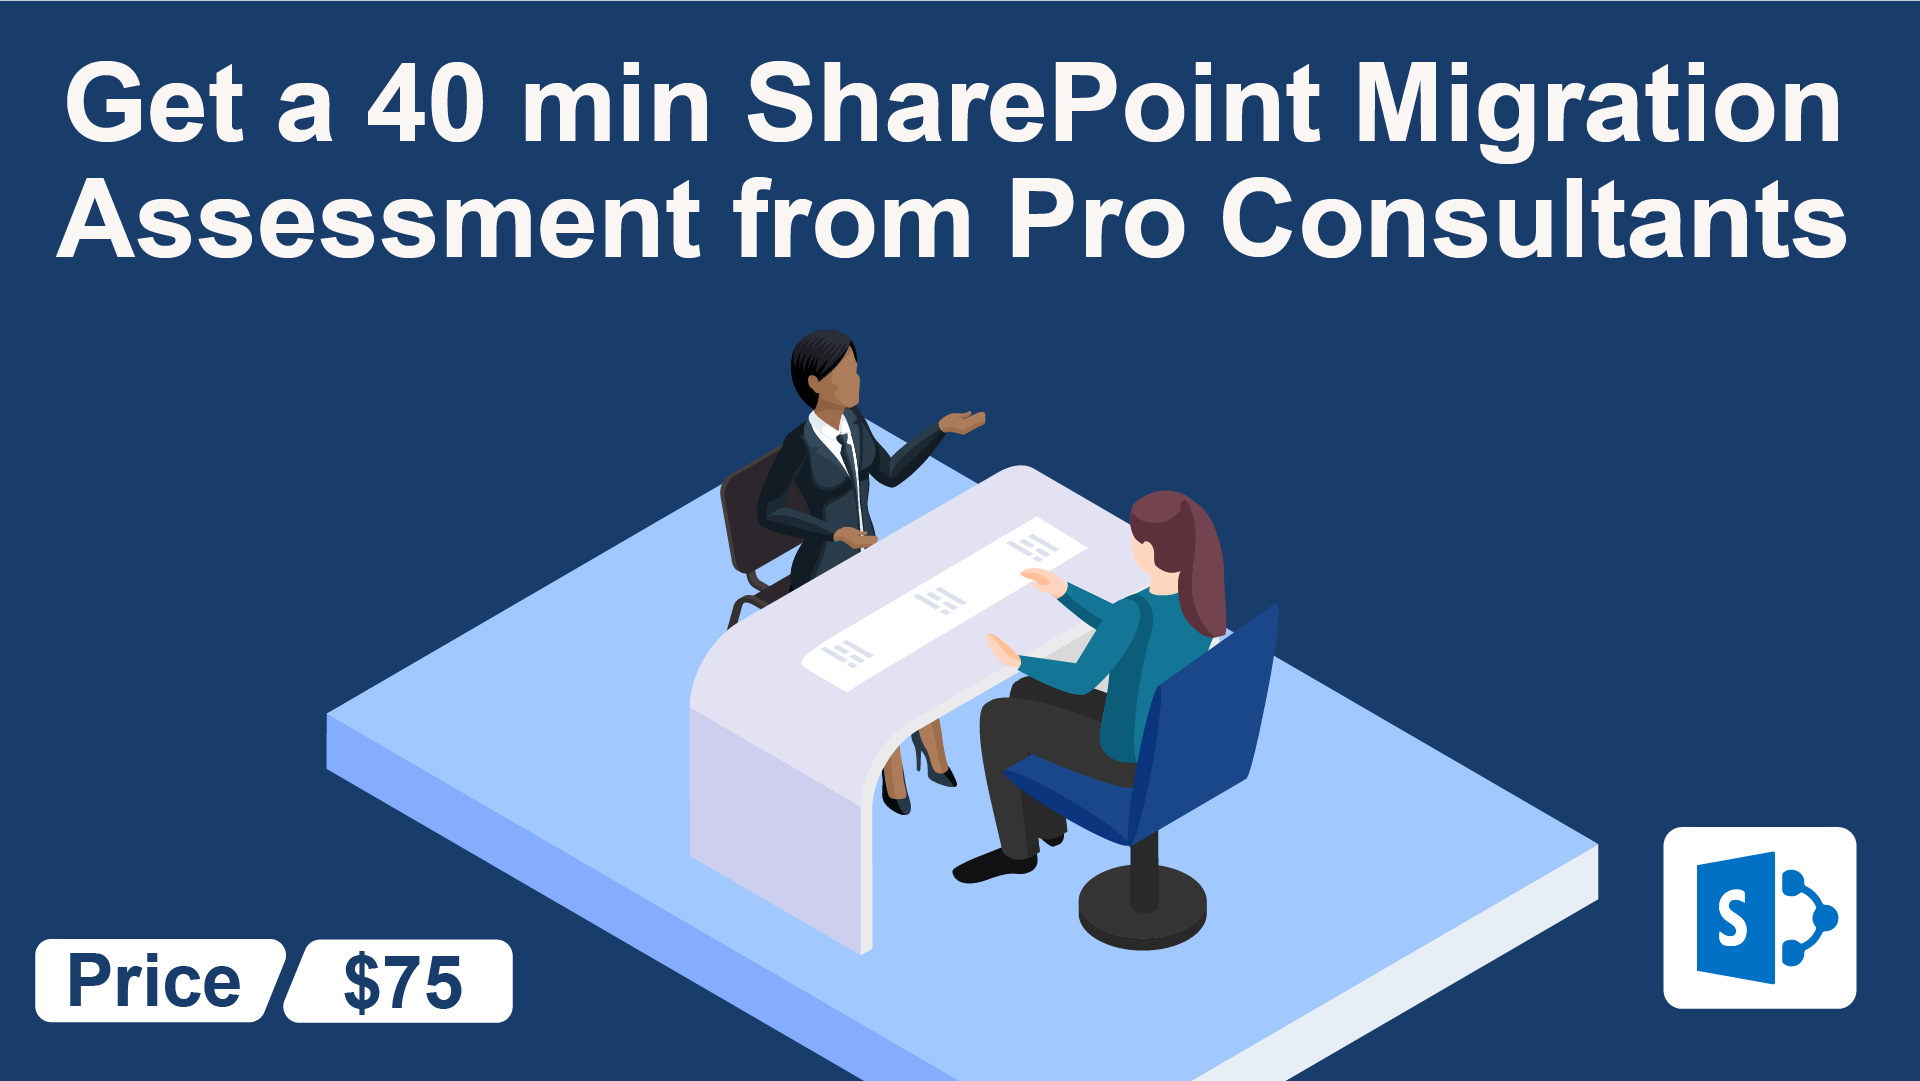 Get a 40 min SharePoint Migration Assessment from Pro Consultants